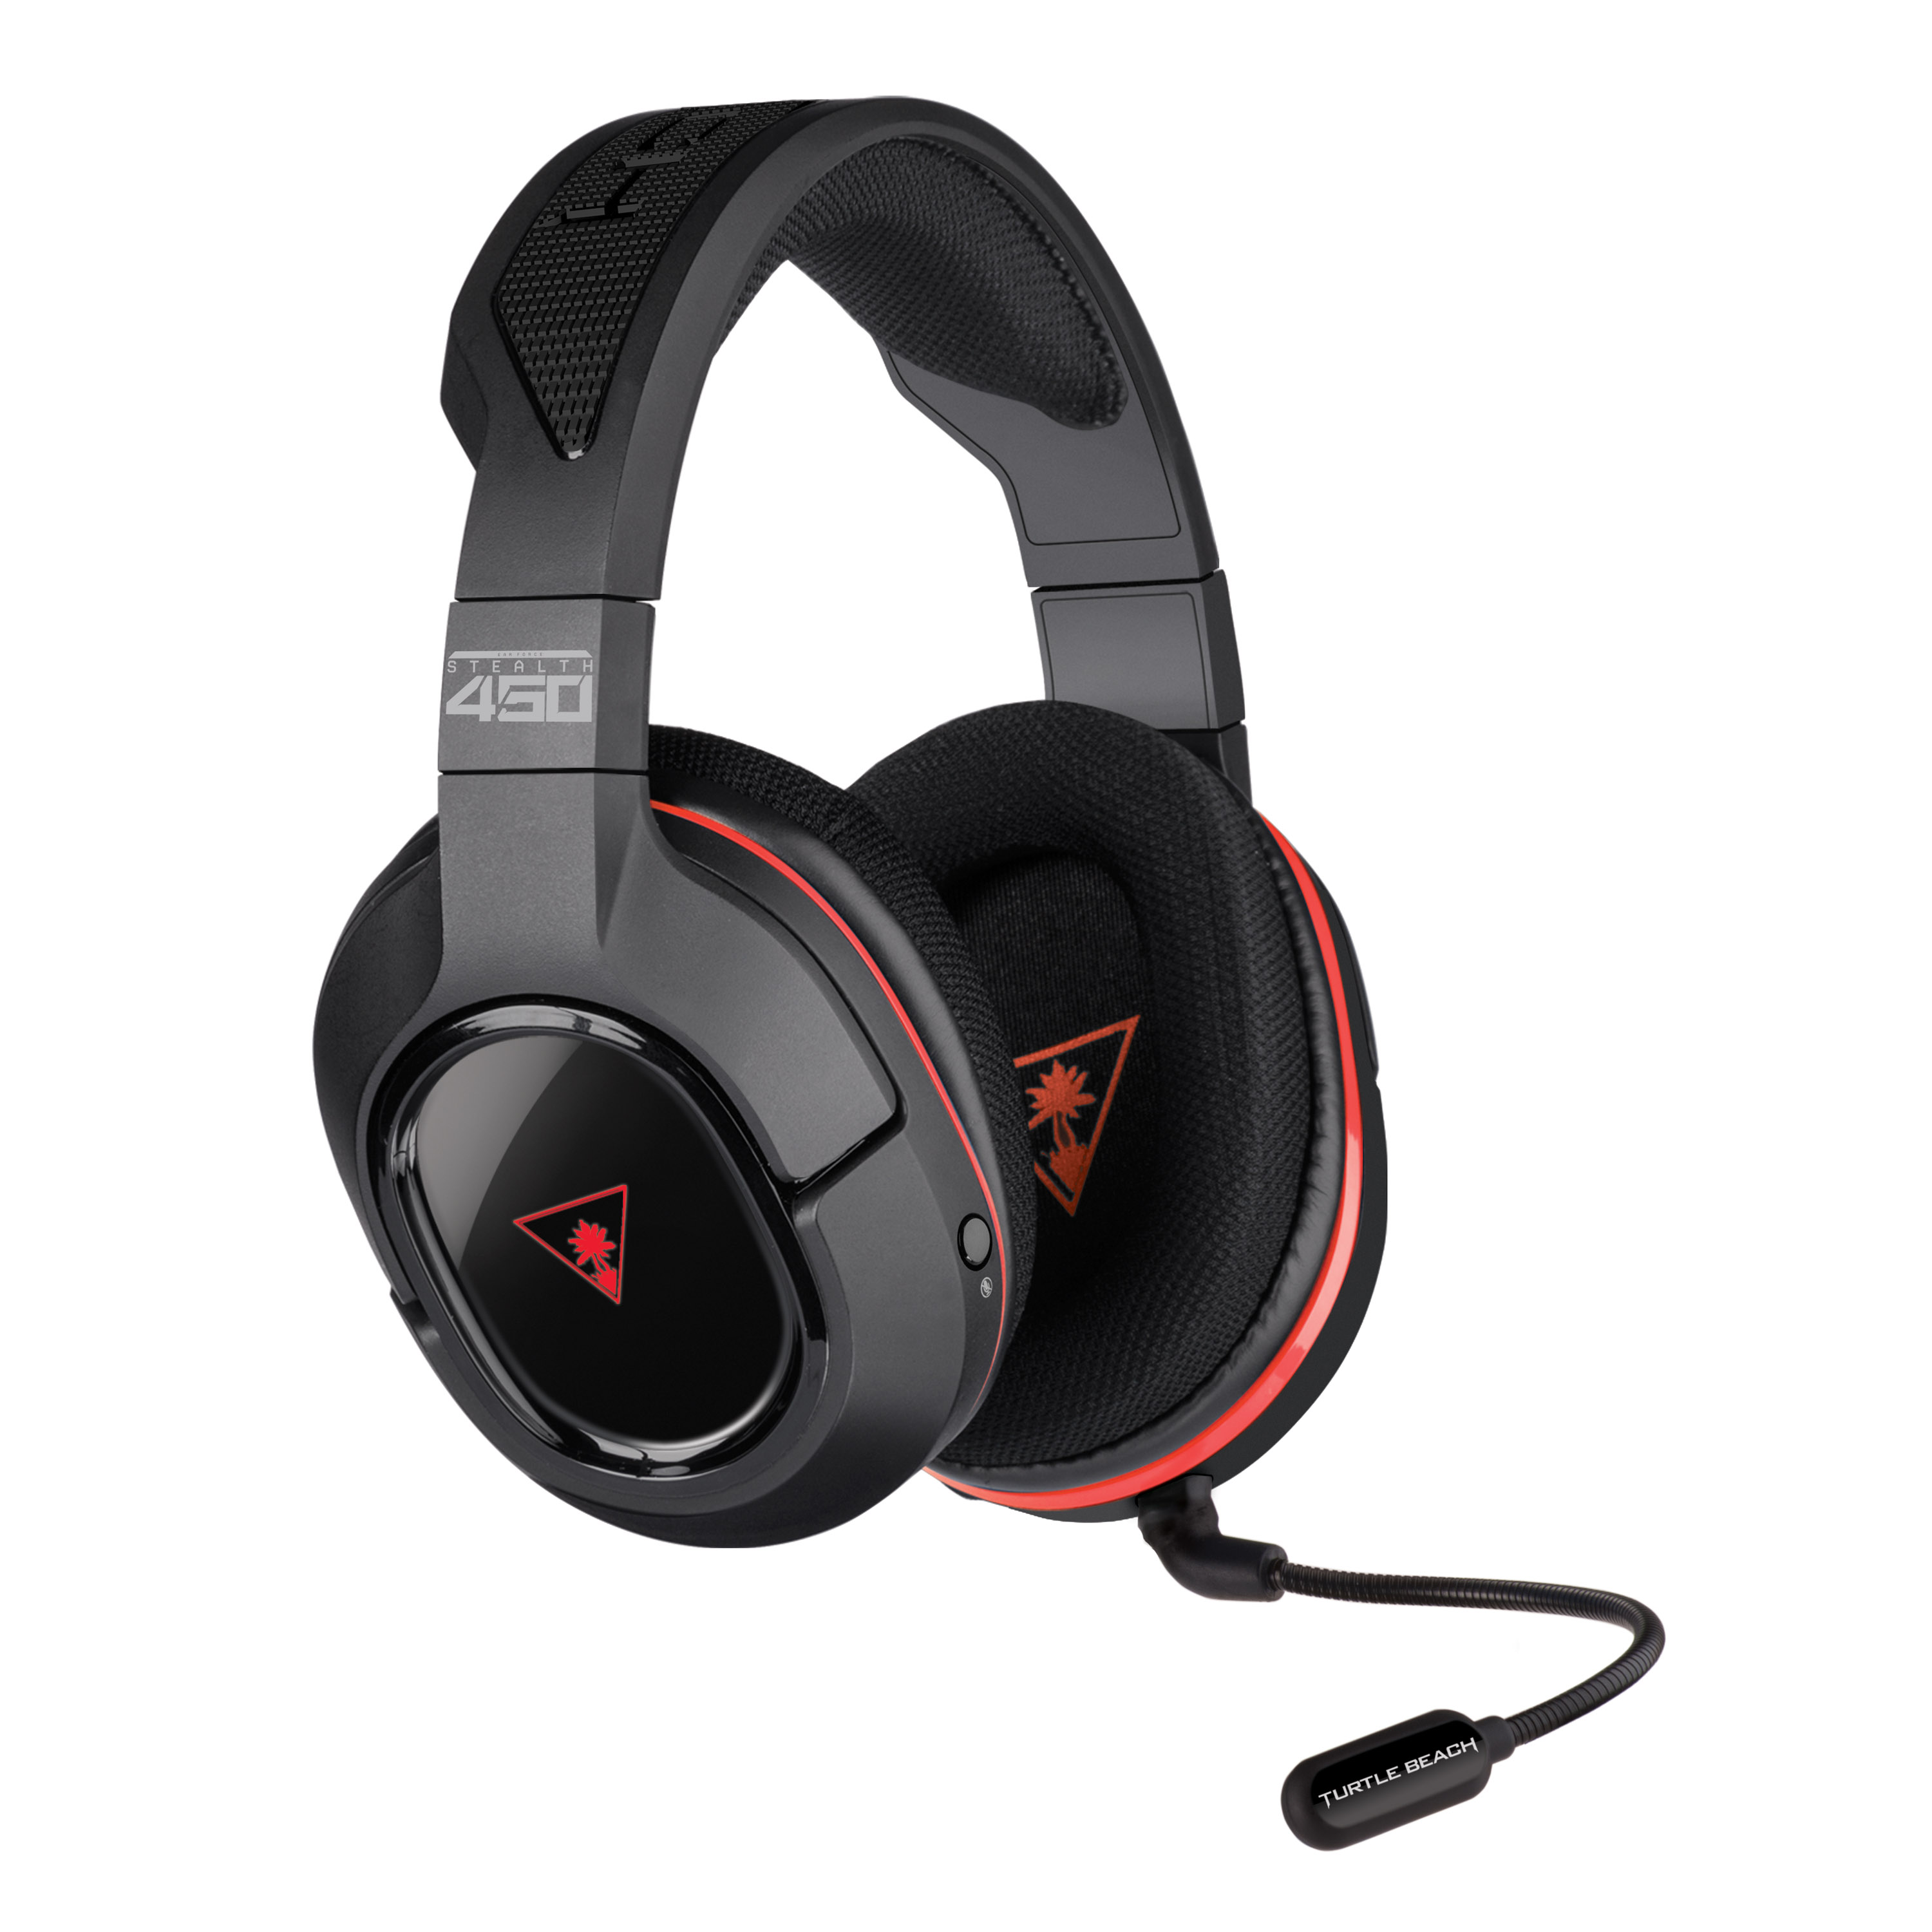 Turtle Beach Stealth 450 Wireless Gaming Headset for PC (Black)